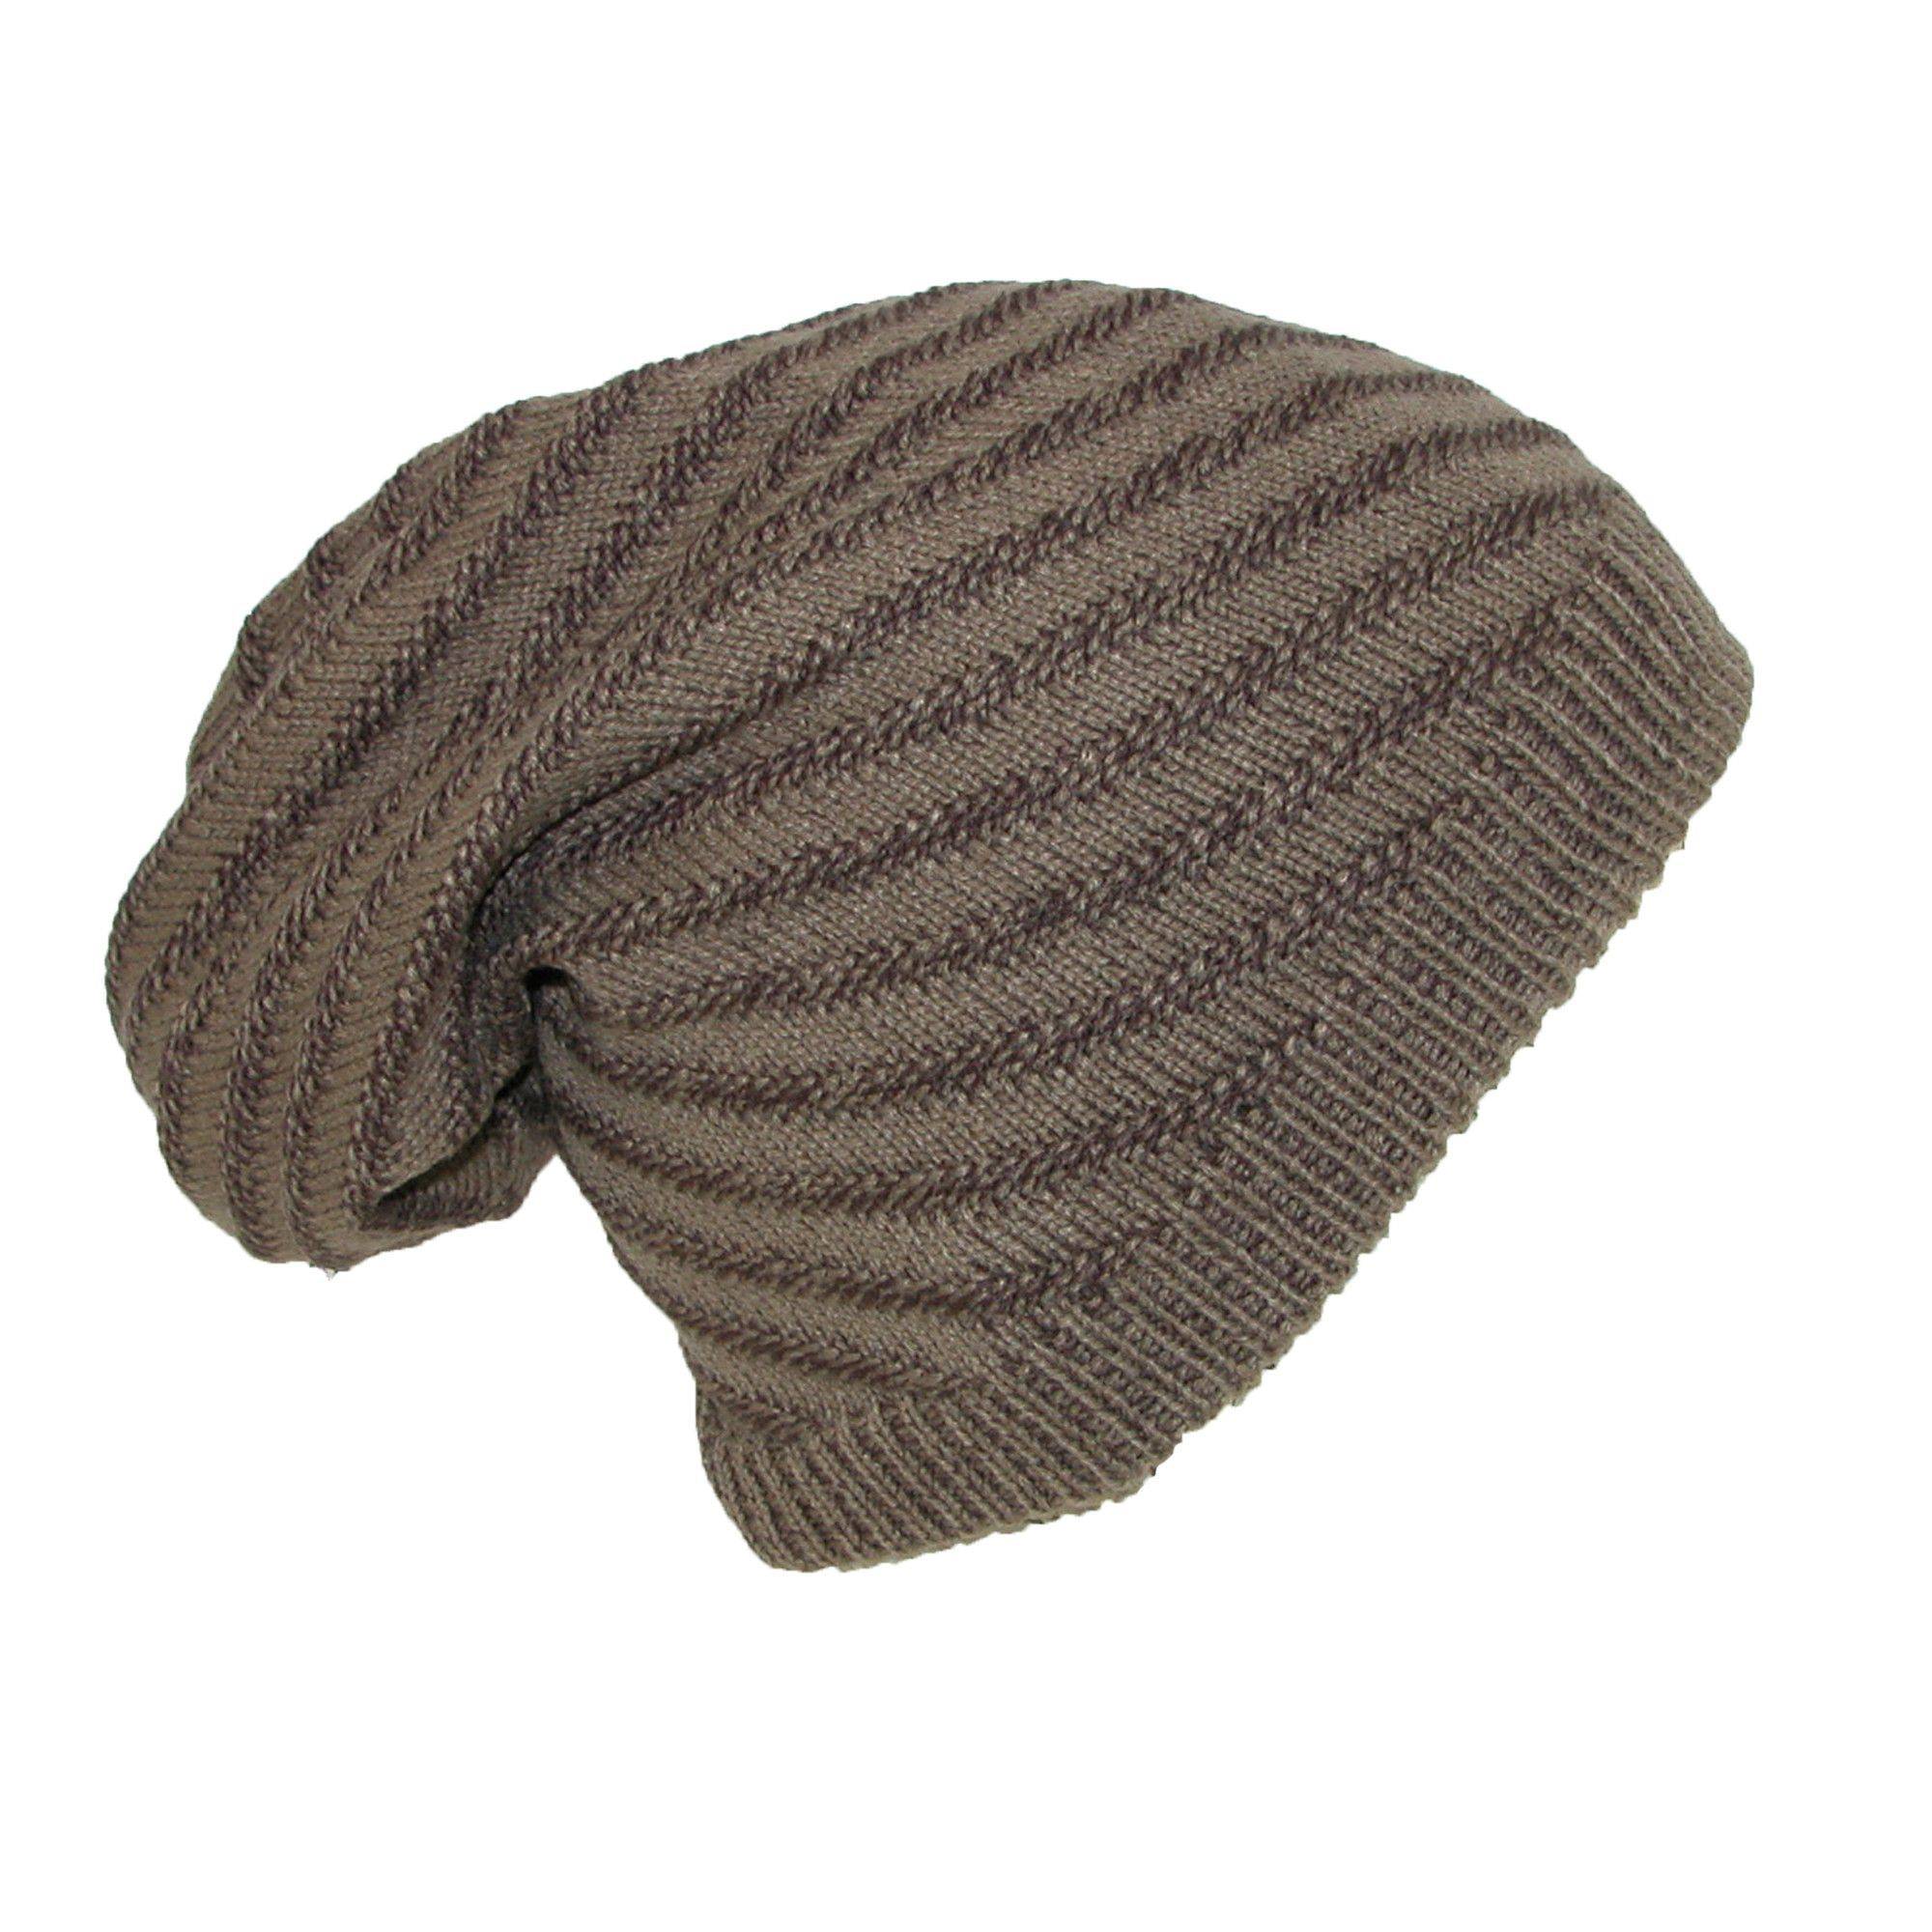 c800c9d73ec Dynamic Asia Reversible Solid to Slanted Stripe Knit Beanie Hat ...